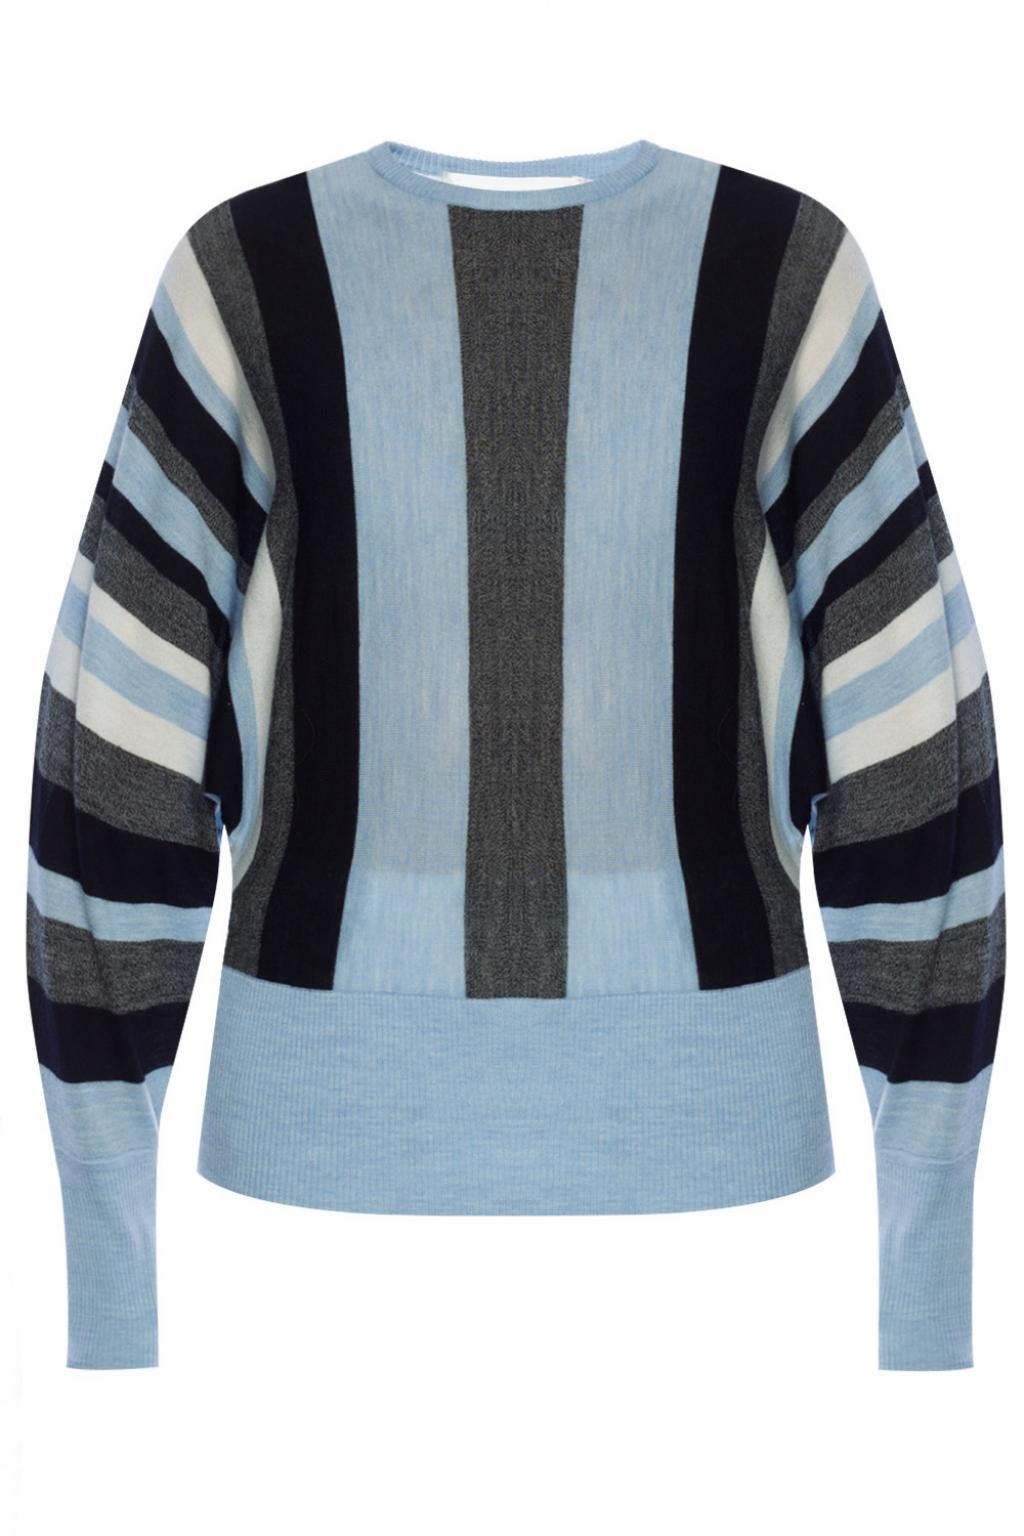 Victoria Victoria Beckham striped sweater Where To Buy Low Price Pre Order For Sale Cost For Sale Nicekicks Get To Buy Sale Online hS34iAYqV